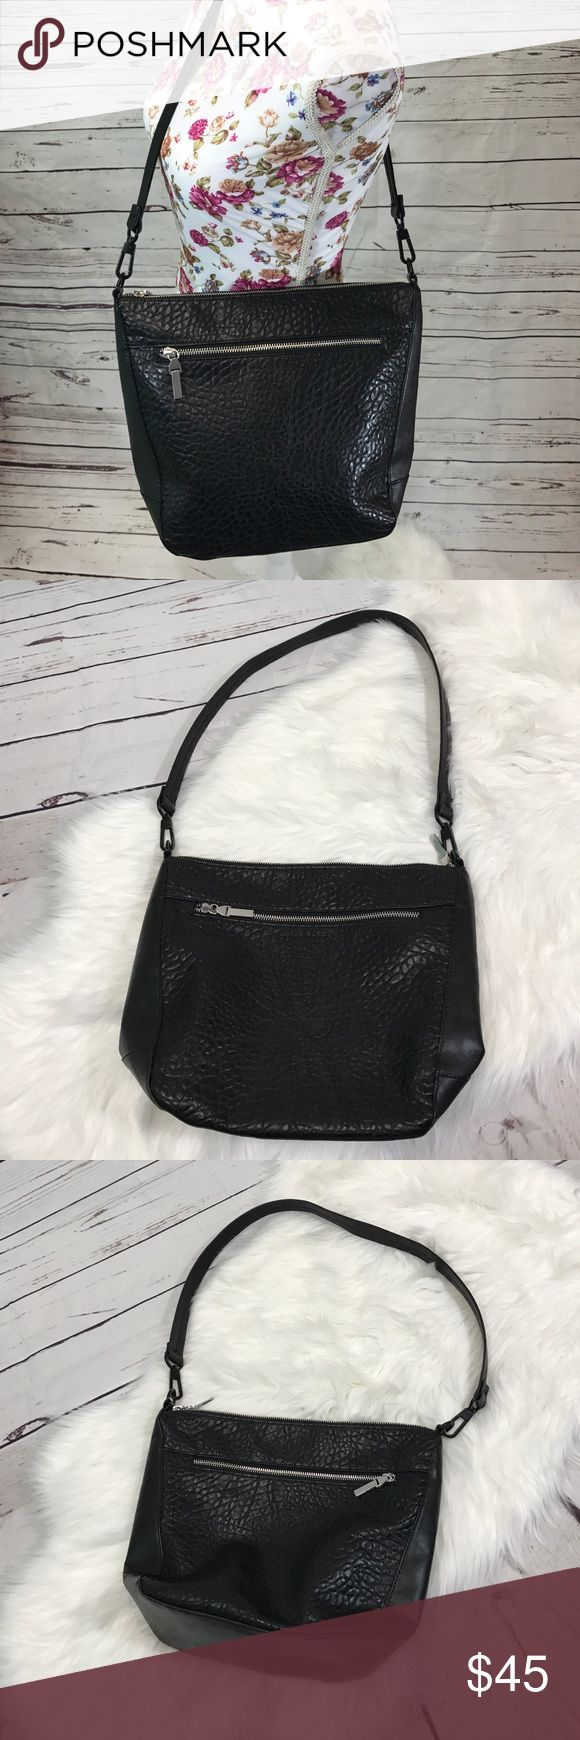 French Connection black textured purse French Connection black textured purse.  Silver hardware. Two outside compartments. Blue interior.  Gorgeous purse!  *Descriptions are described to best ability but please do not hesitate to ask questions if more information is needed. Colors may vary slightly to lighting and photos.*  No modeling, no trades.  Y18 French Connection Bags Shoulder Bags